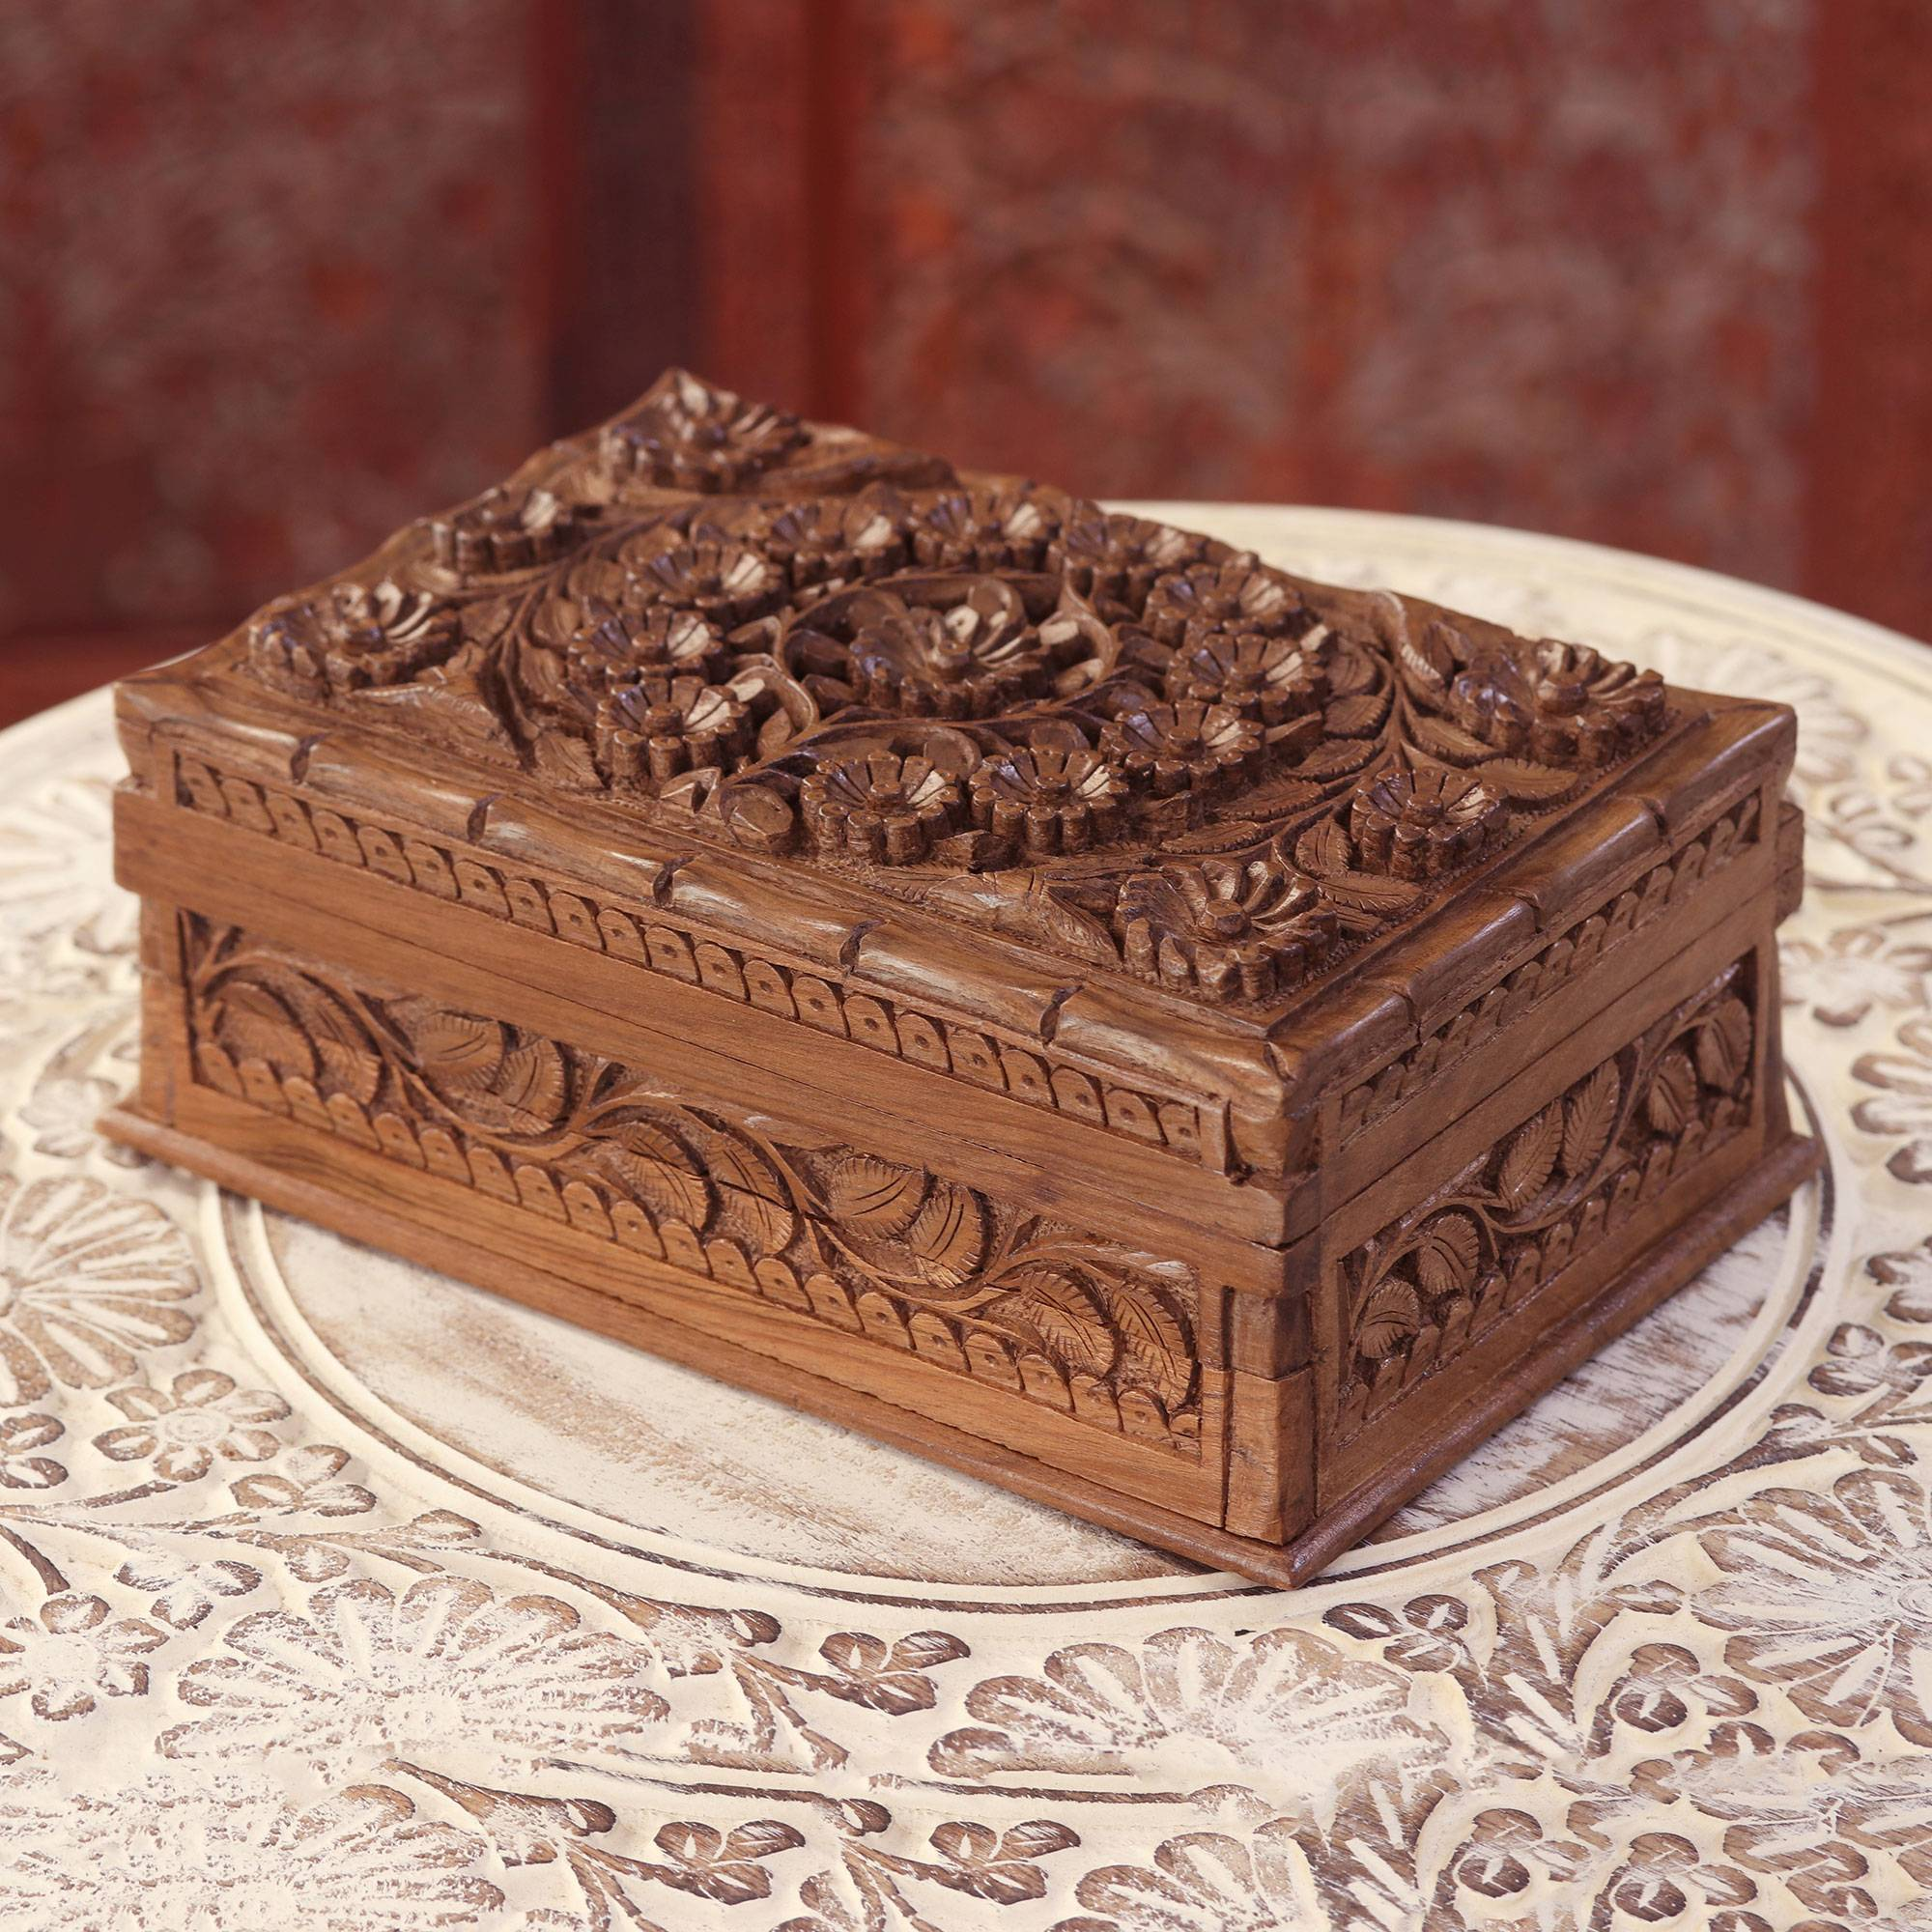 Hand-Carved Walnut Wood Jewelry Box from India - Blossoms of Kashmir |  NOVICA